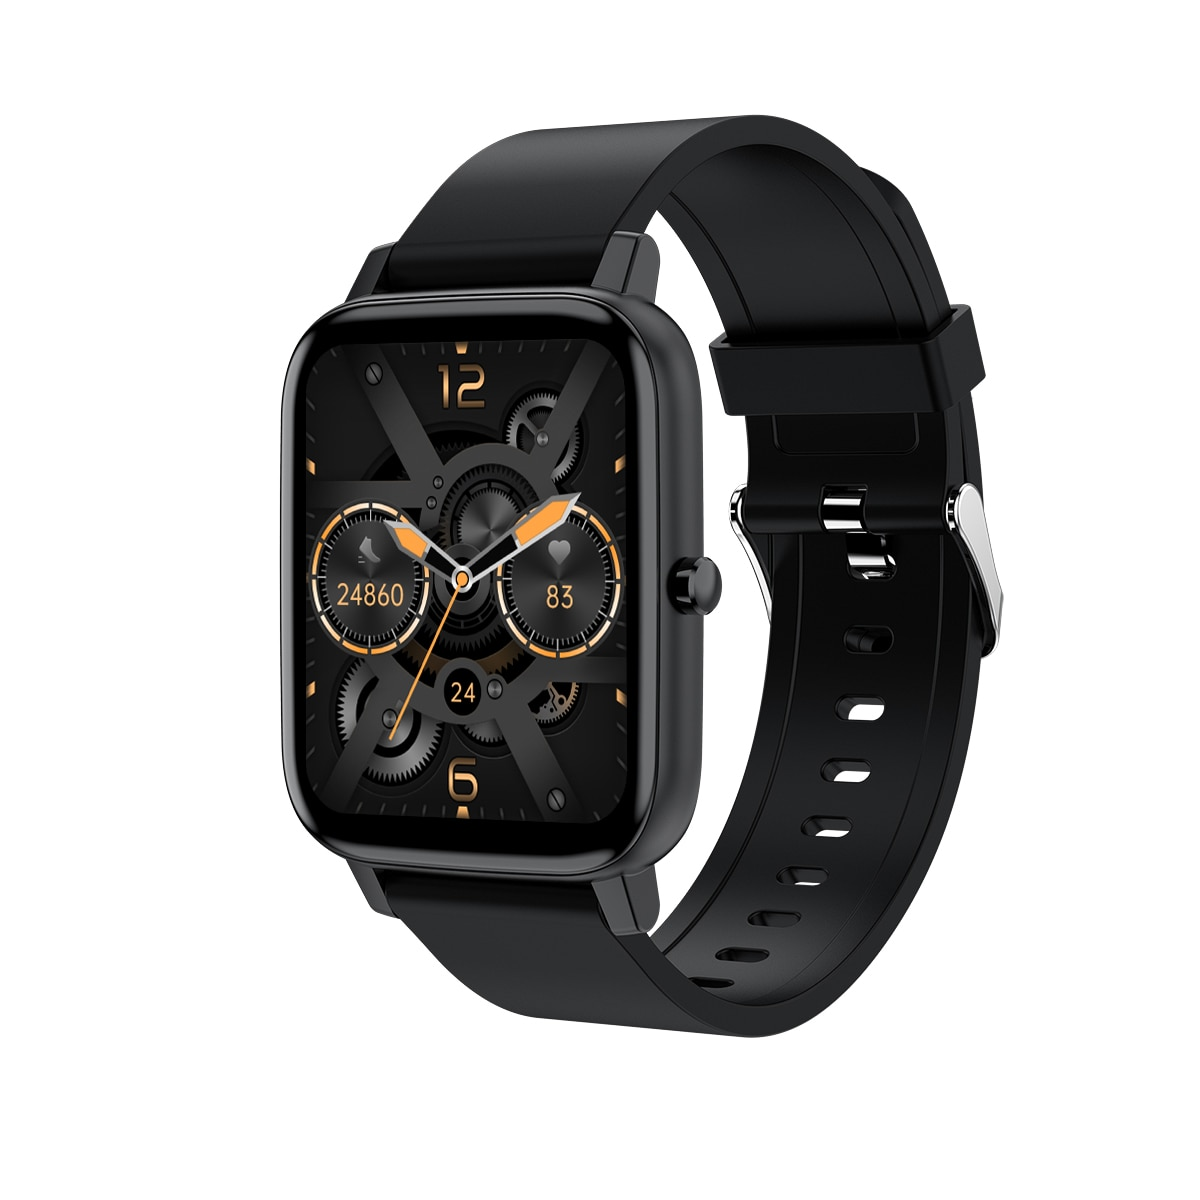 The New H80 Smart Watch 1.69 High-Definition Touch Screen Supports Bluetooth 5.0 Link APP Can Be Customized More Than Language